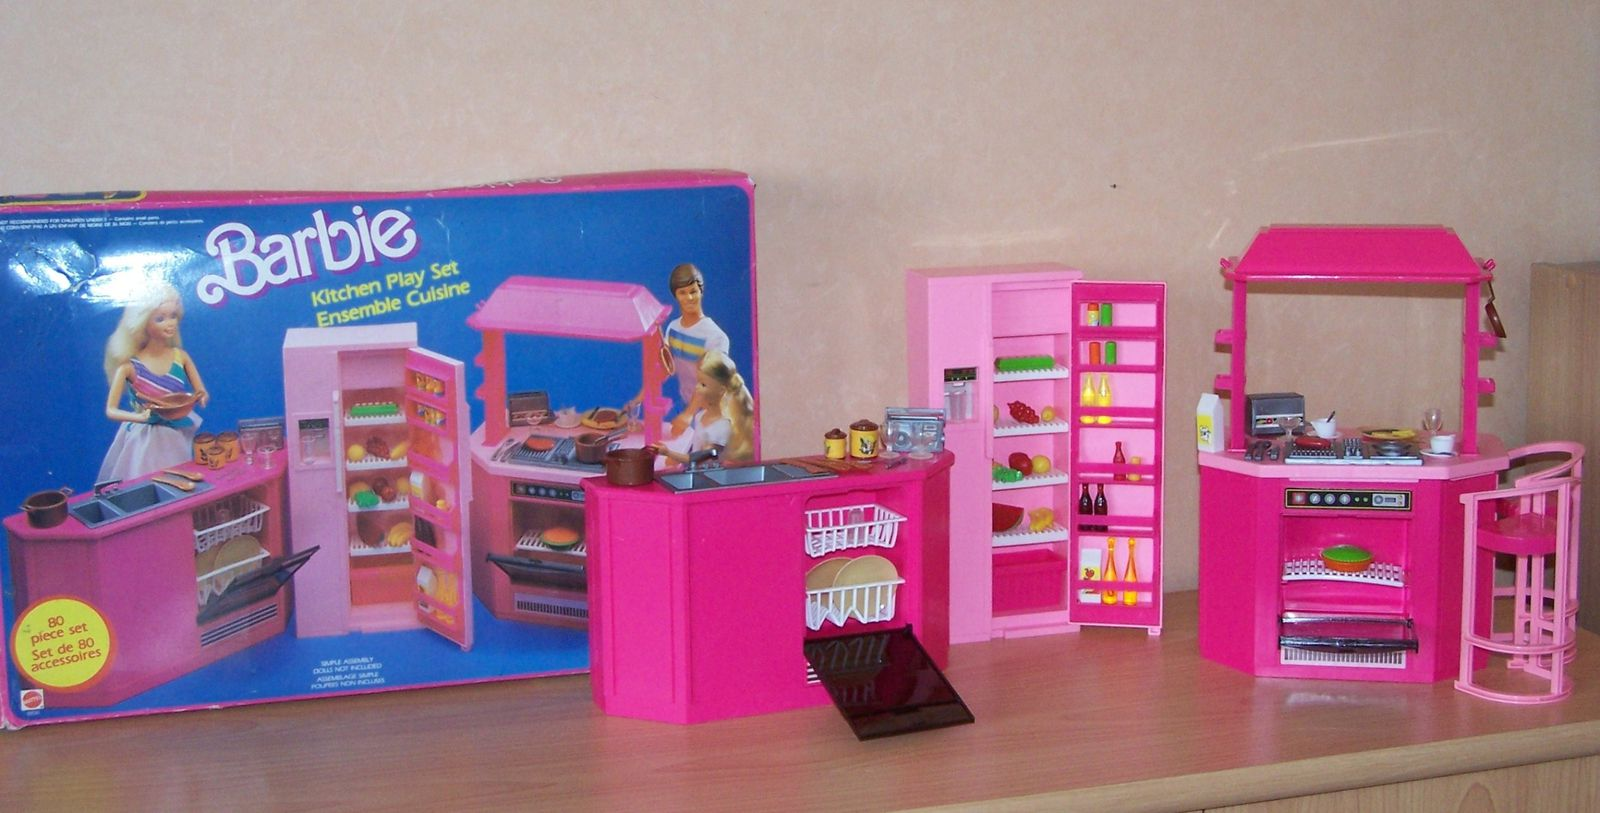 cuisine barbie de mattel. Black Bedroom Furniture Sets. Home Design Ideas